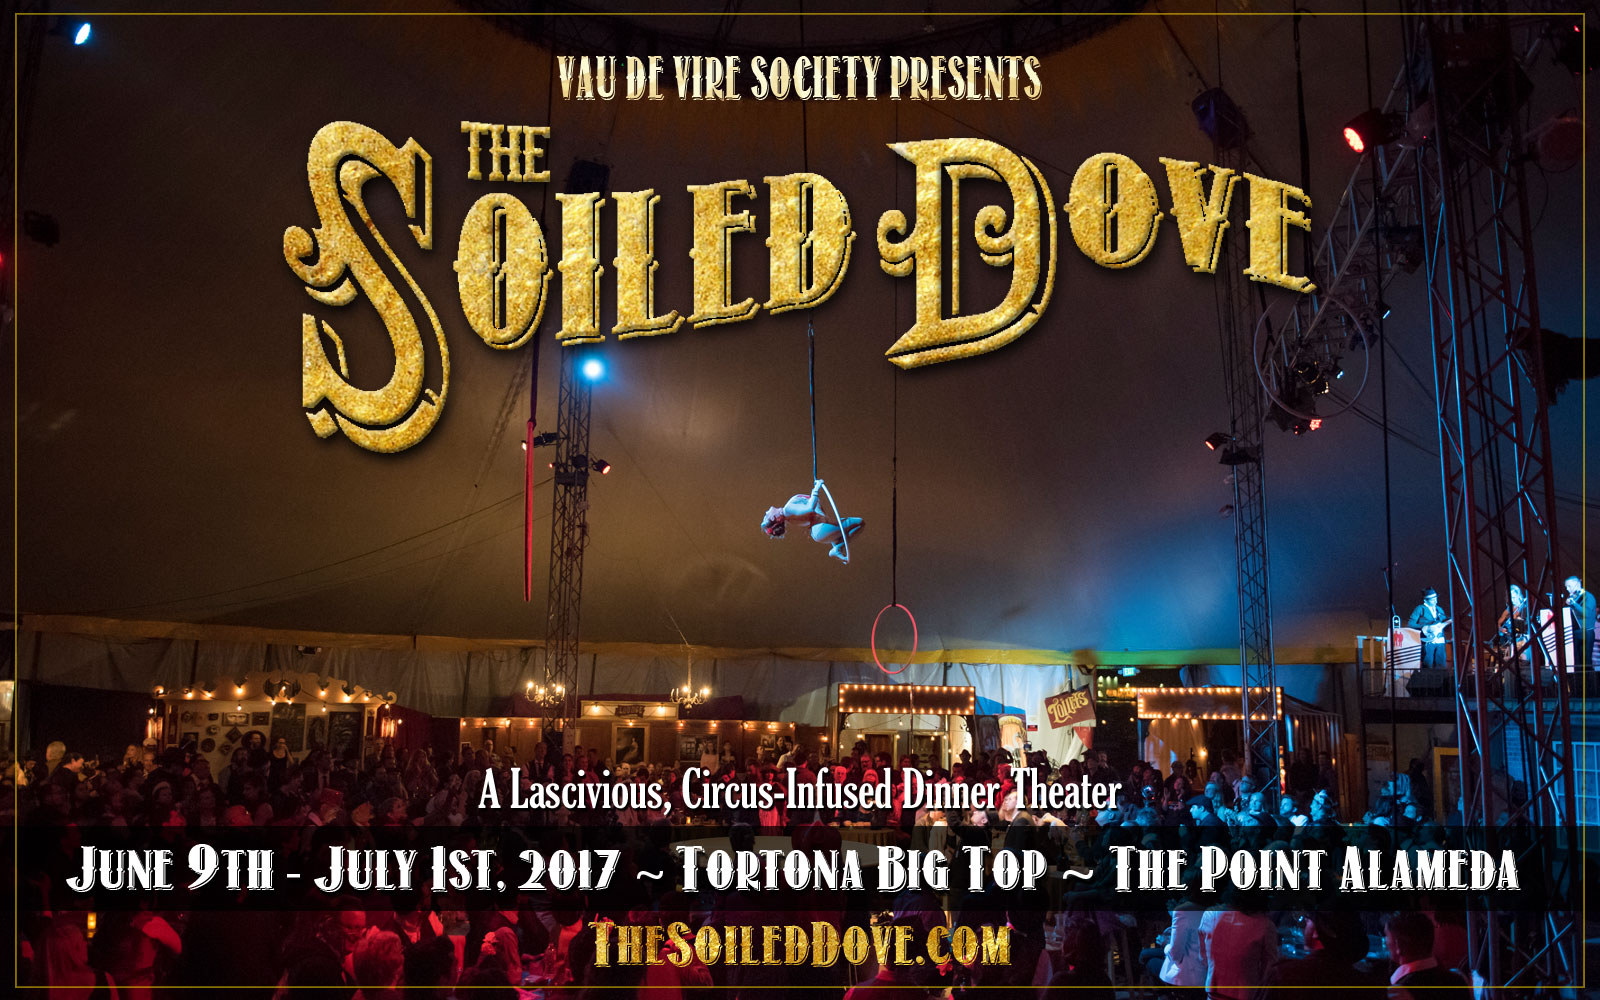 The Soiled Dove under the Tortona Big Top!